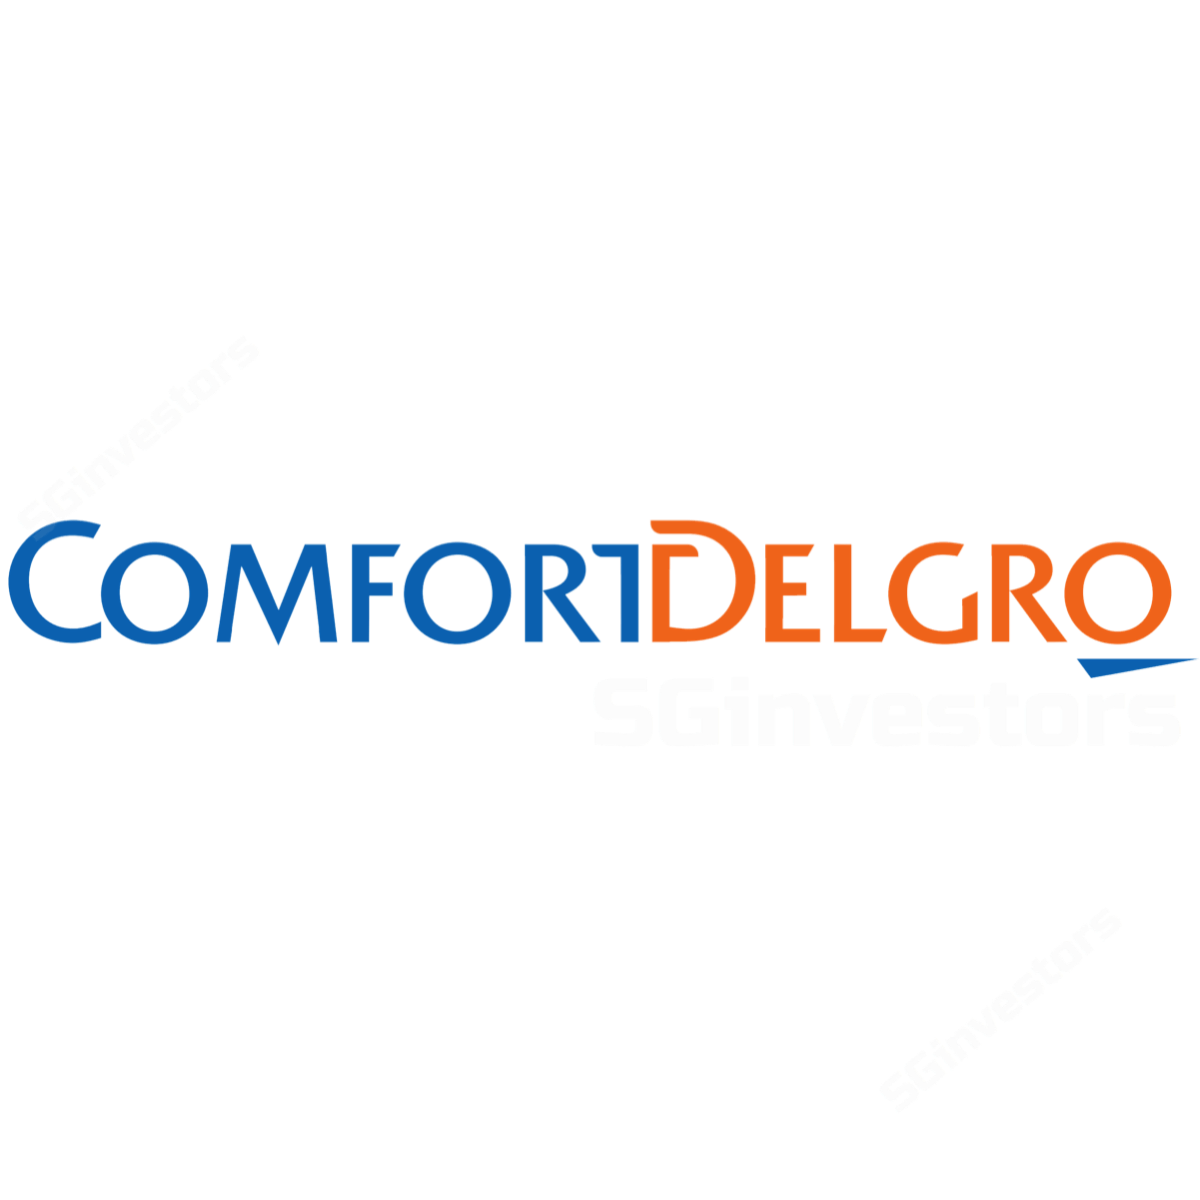 ComfortDelGro Corporation (CD SP) - UOB Kay Hian 2017-12-11: Positive On Uber JV, Maintain BUY